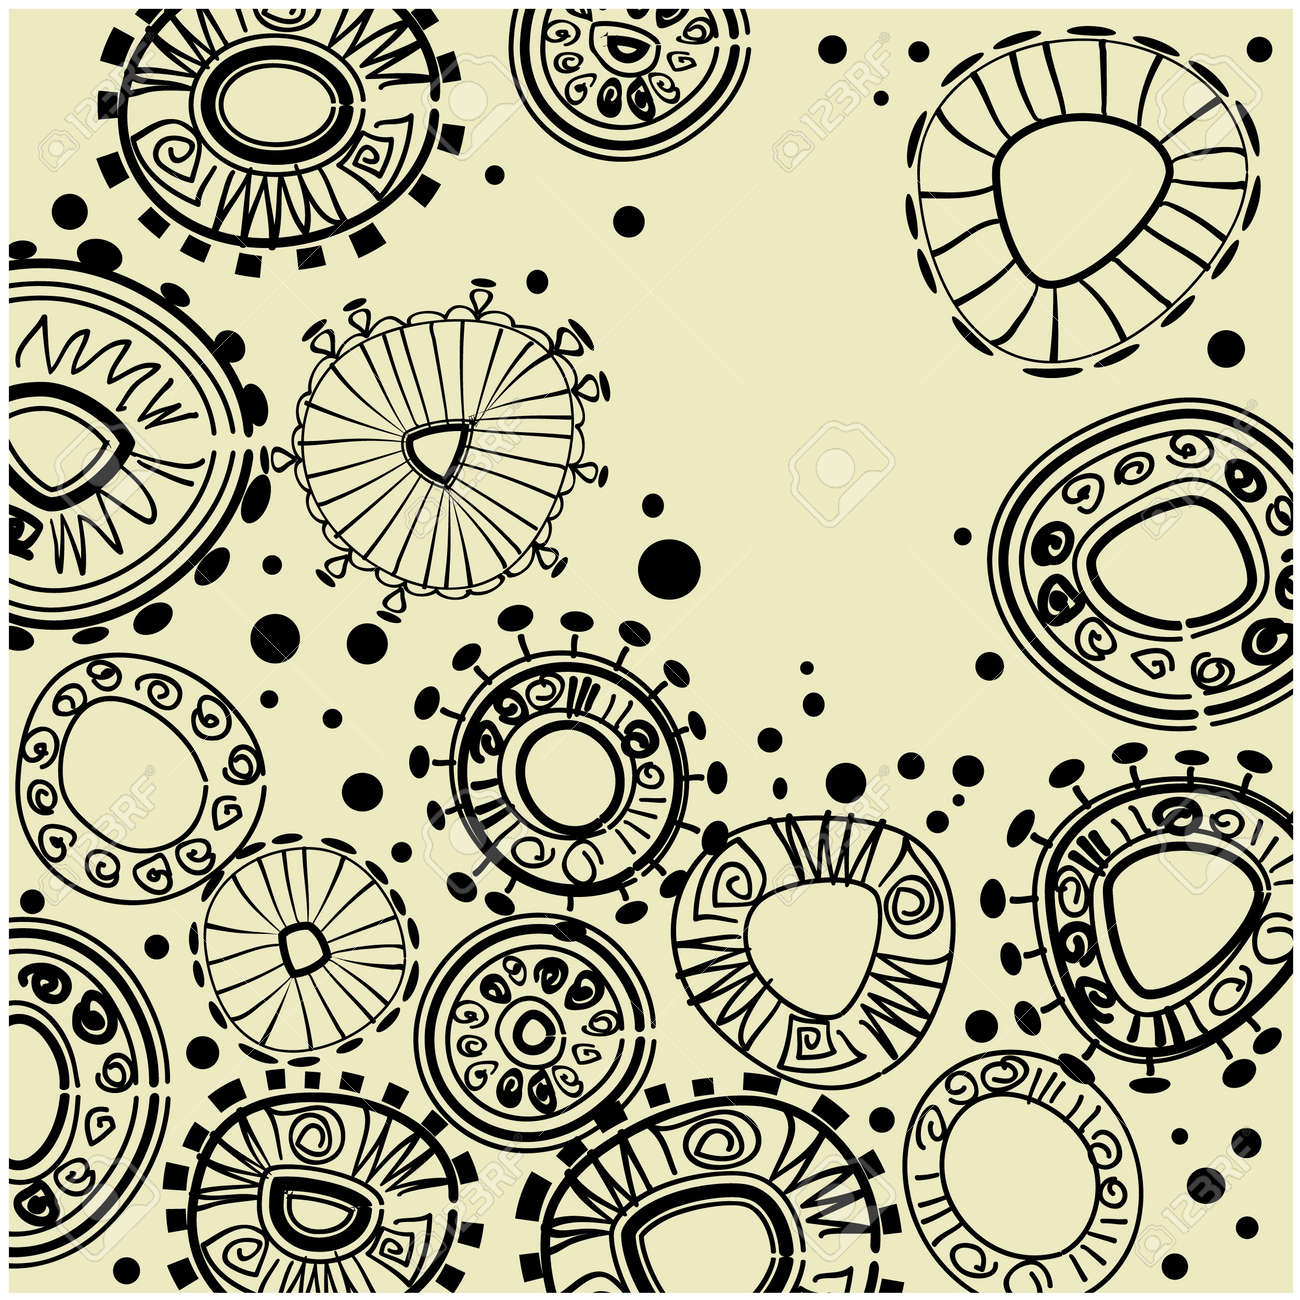 art vintage pattern background Stock Photo - 13122234